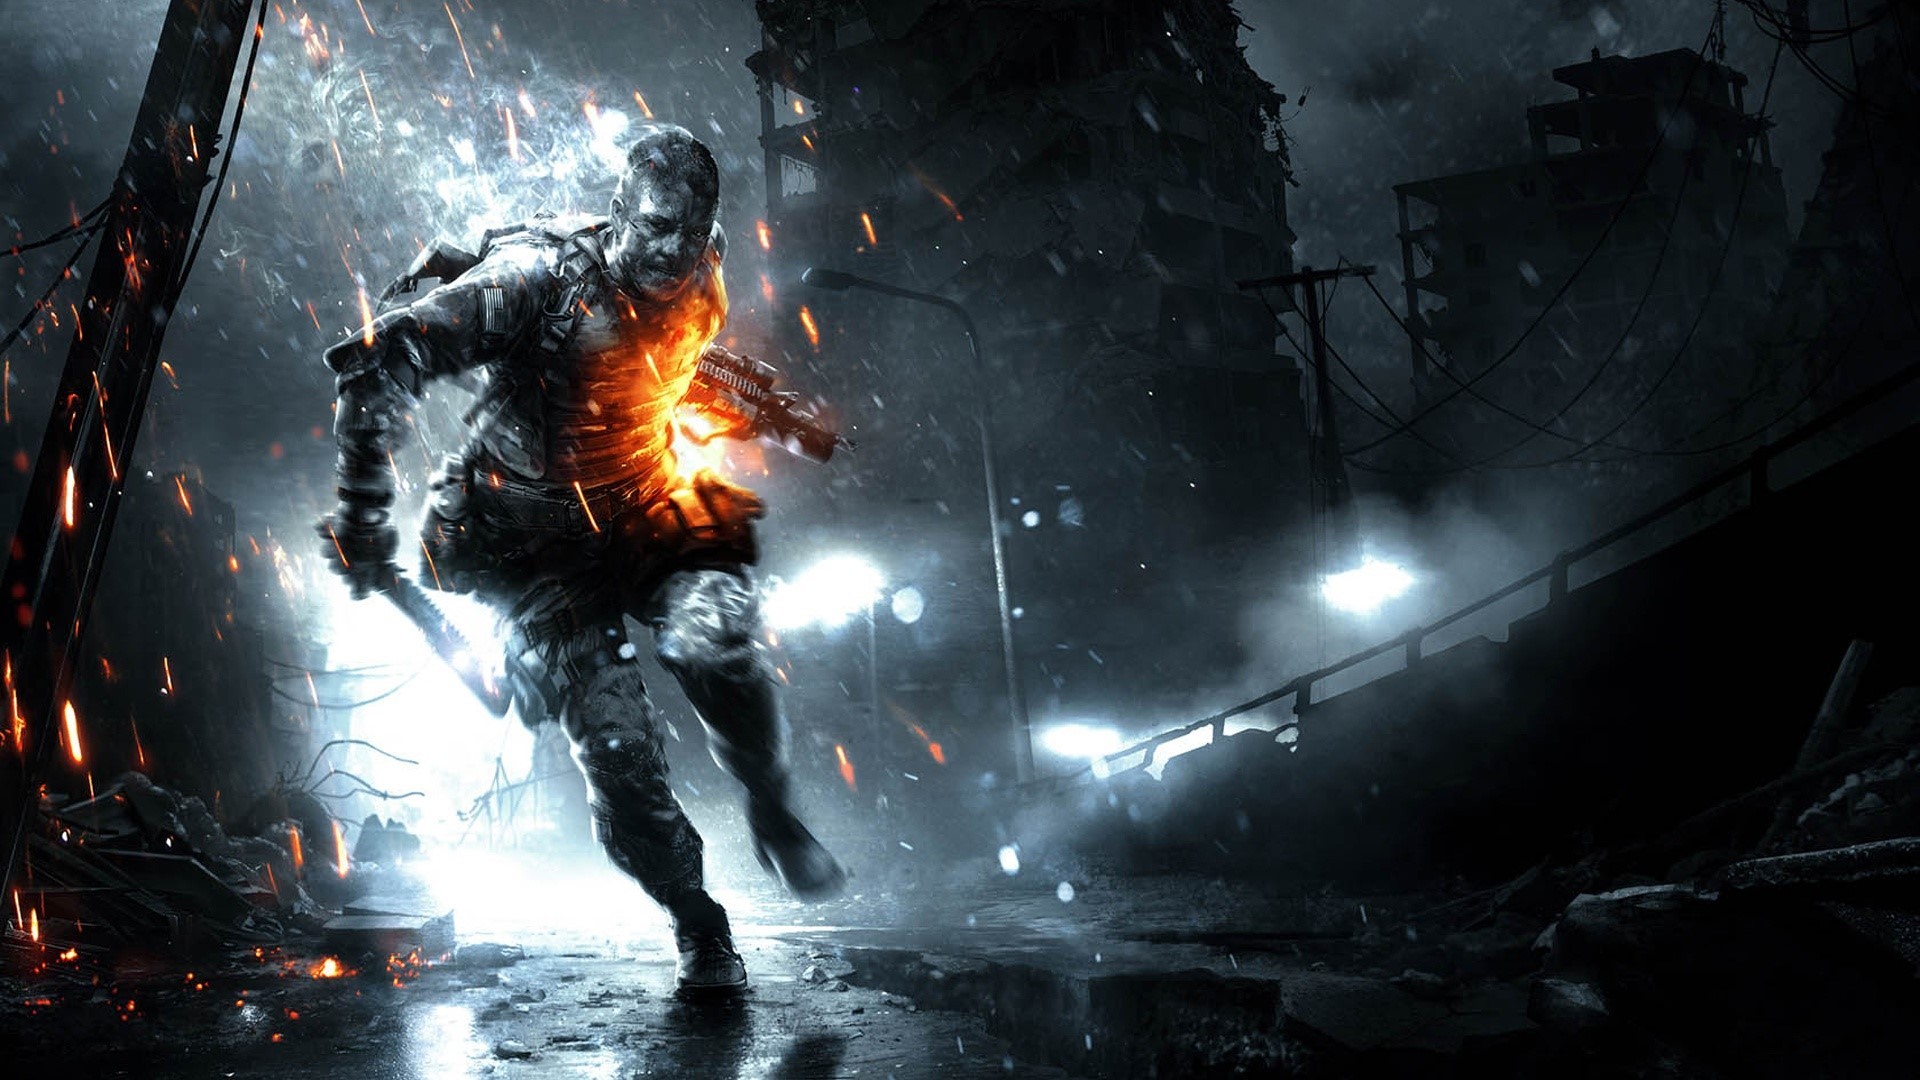 Wallpaper Battlefield 3 Premium Aftermath Images